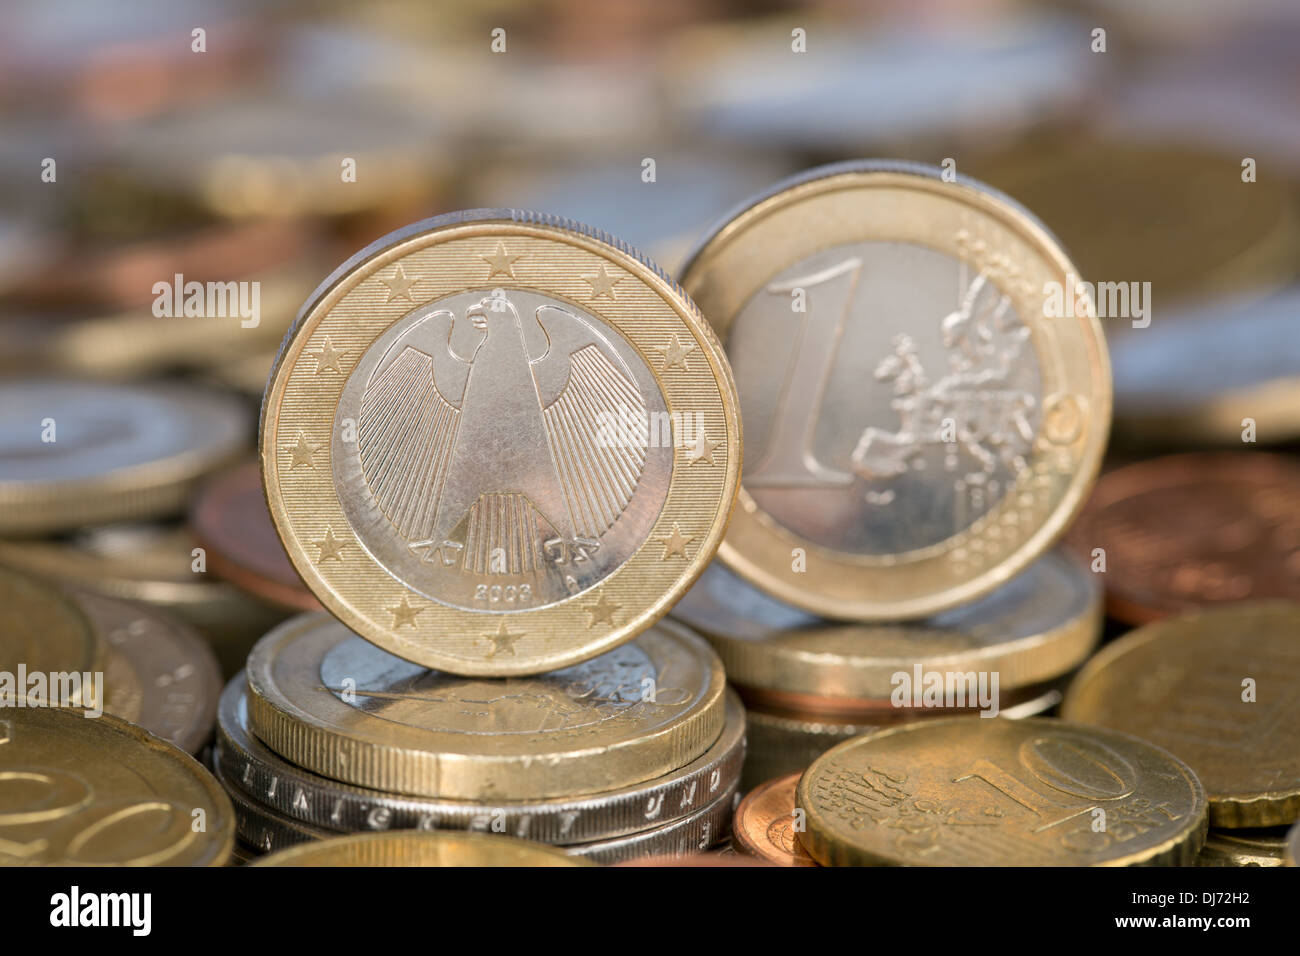 A one Euro coin from the EU member country Germany - Stock Image